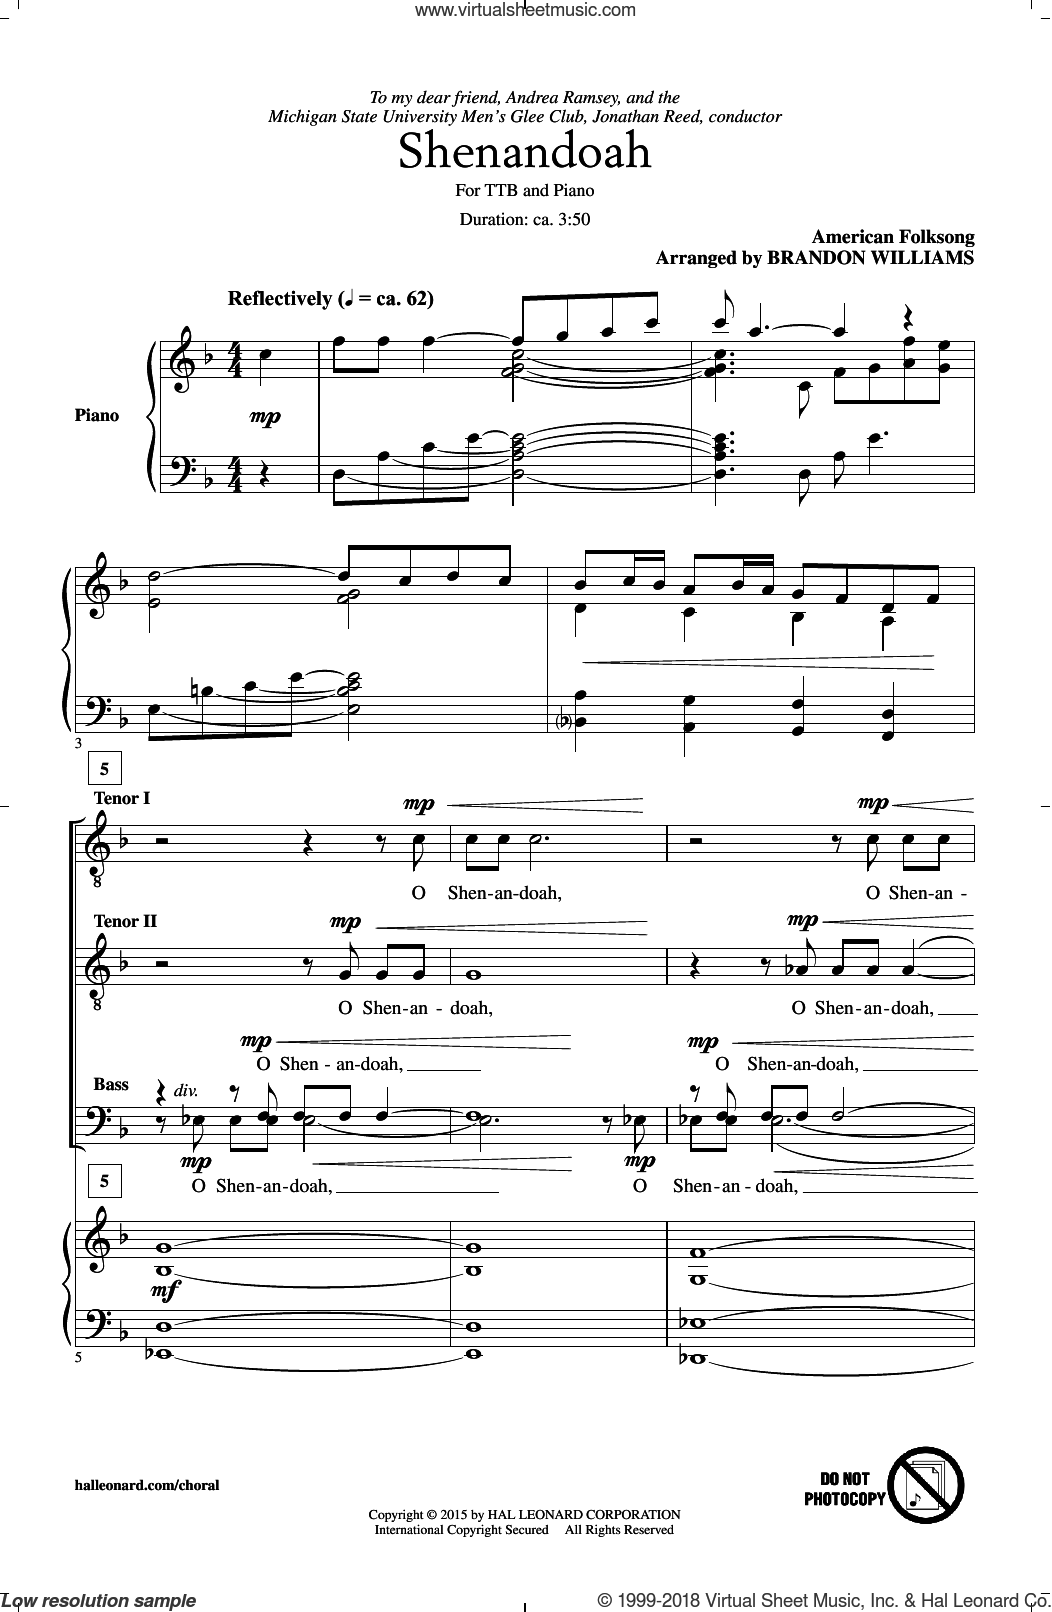 Shenandoah sheet music for choir (tenor voice, bass voice, choir) by Brandon Williams and American Folksong. Score Image Preview.